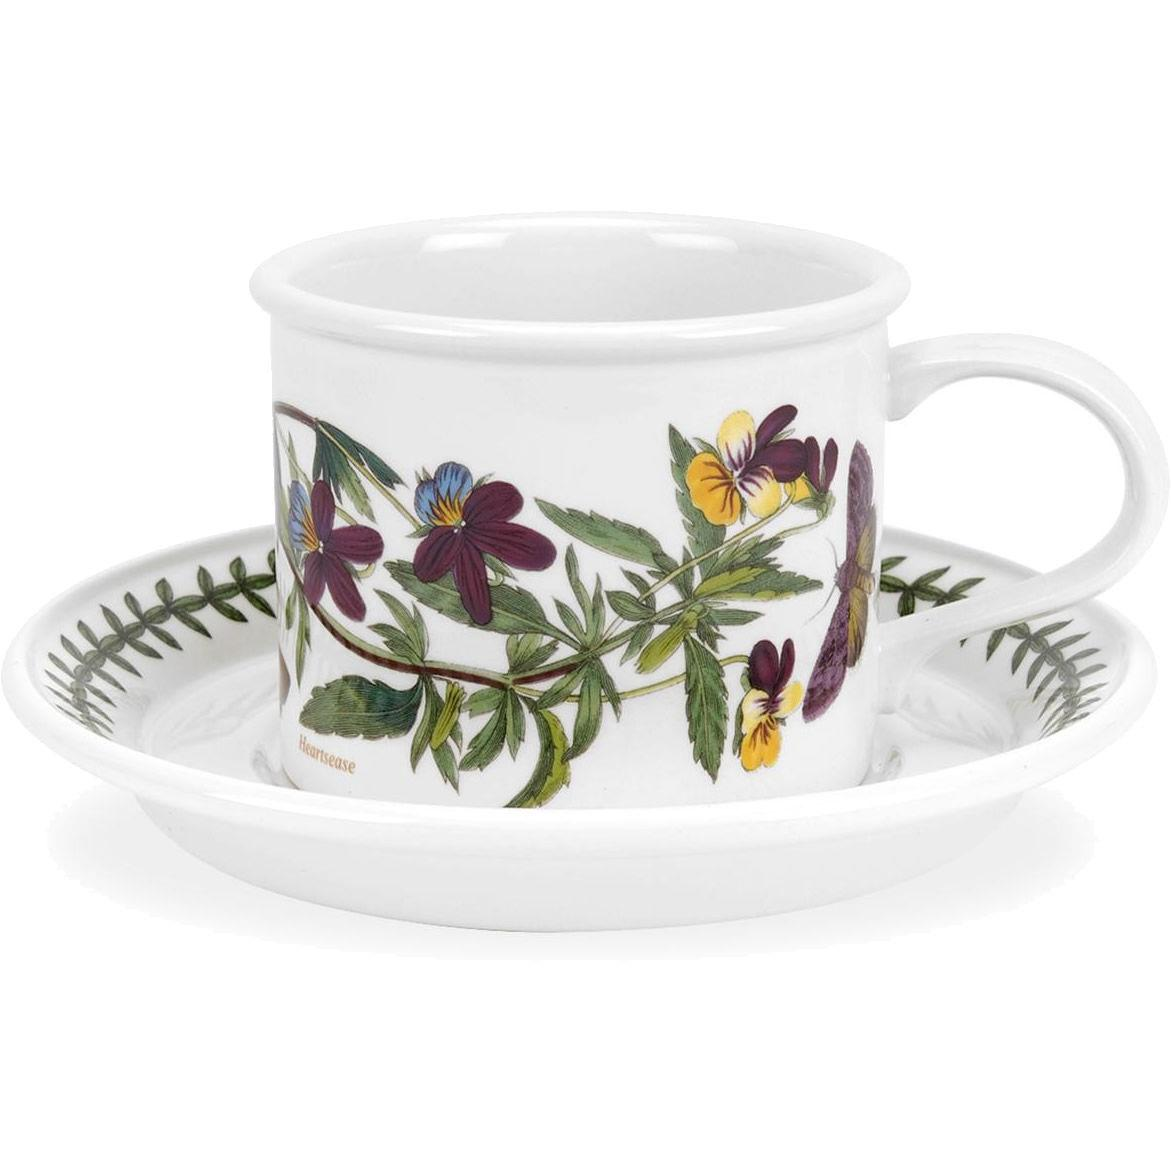 Portmeirion Botanic Garden Forget Me Not Cup and Saucer